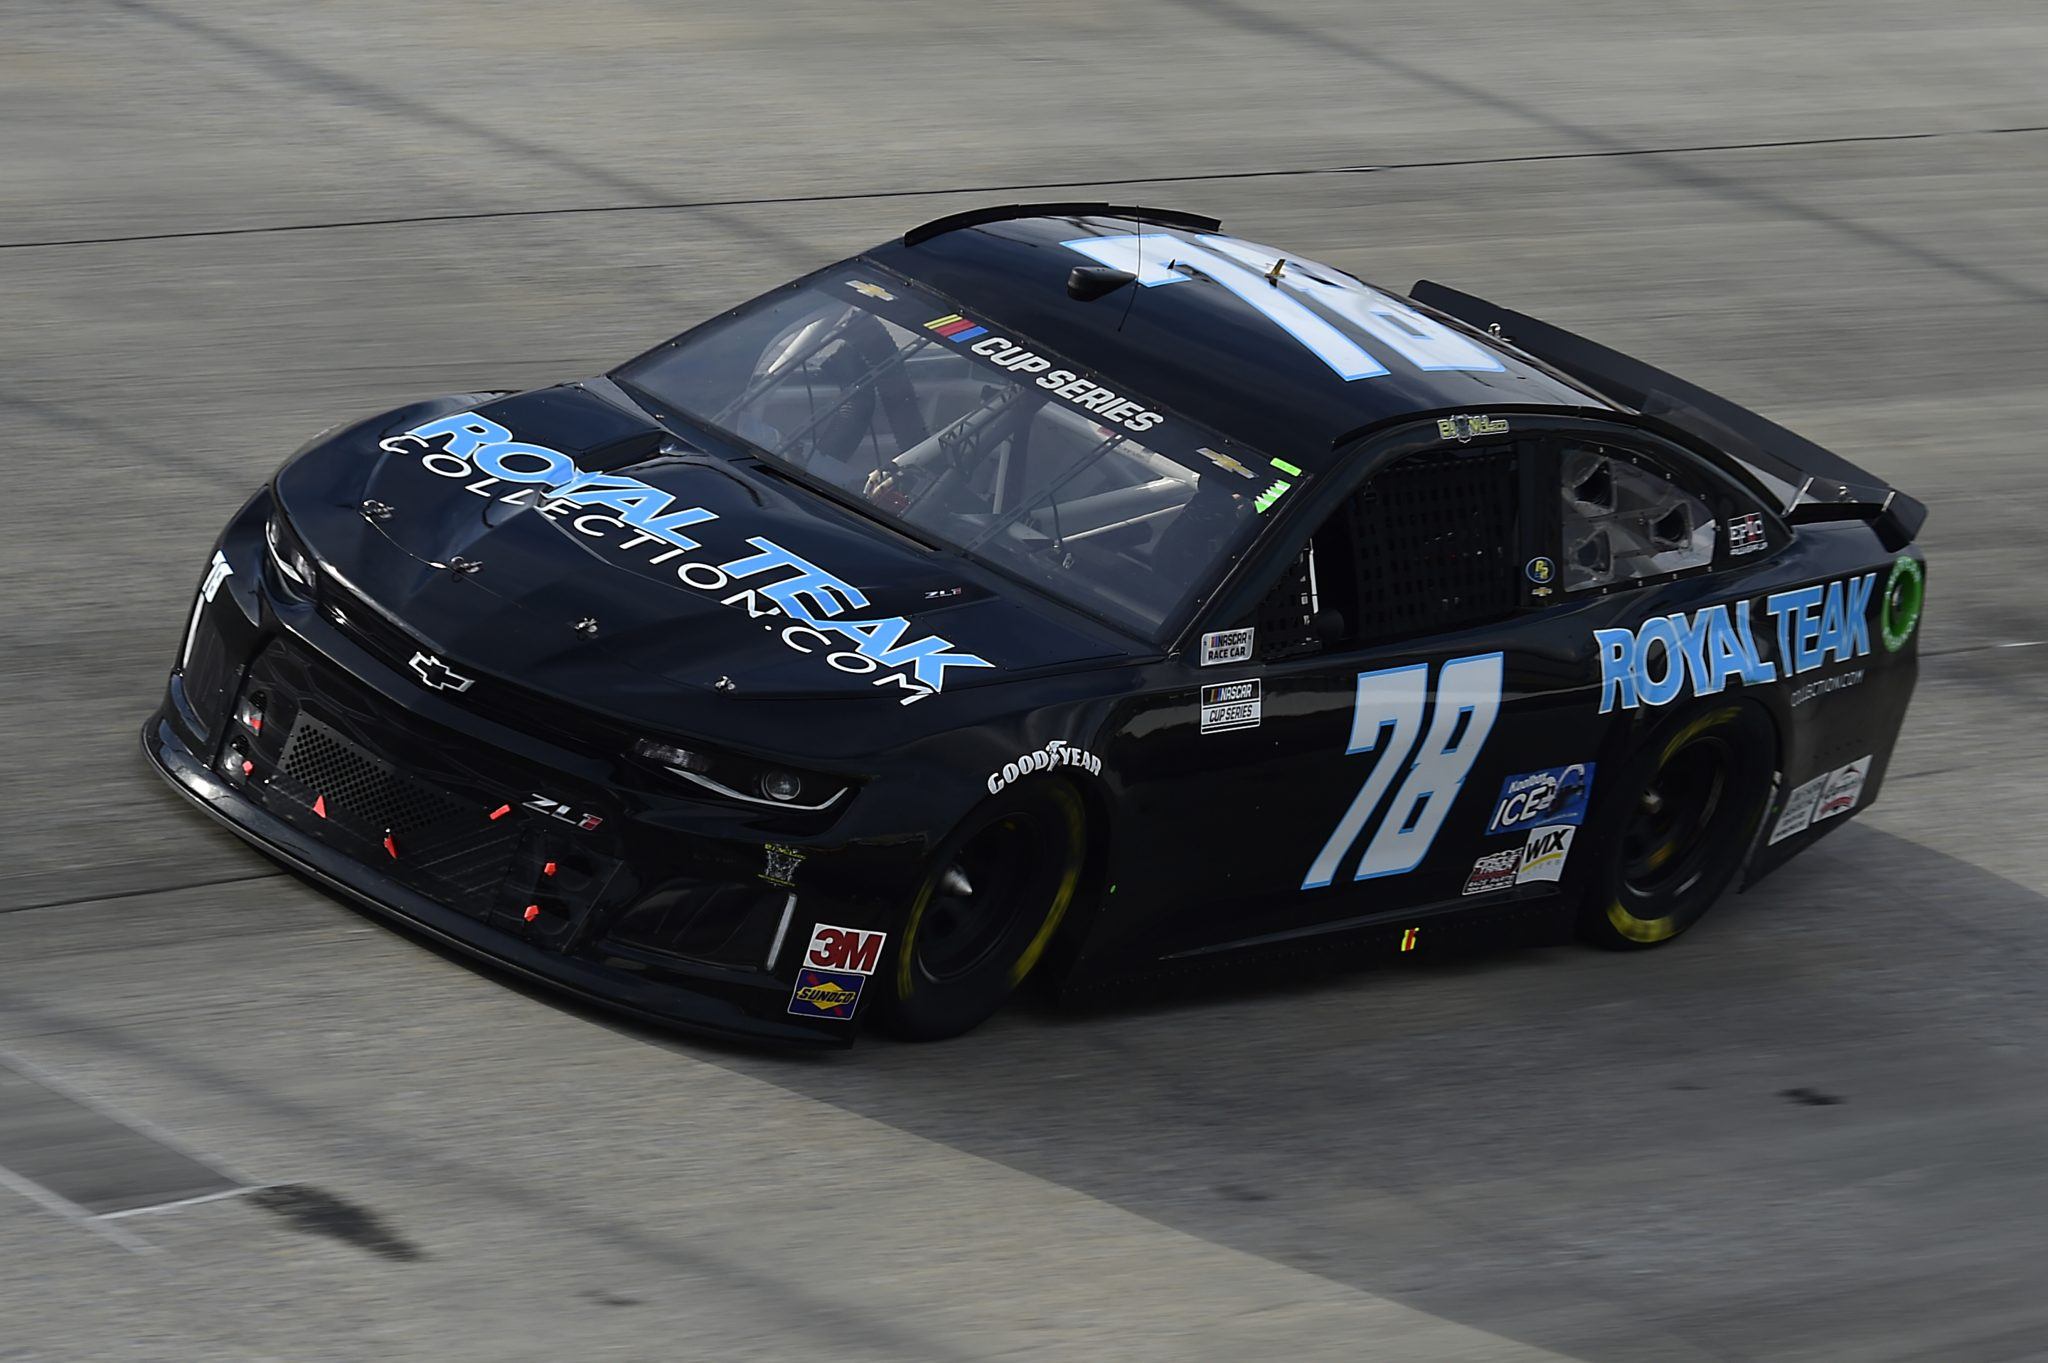 DOVER, DELAWARE - AUGUST 22: BJ McLeod, driver of the #78 Chevrolet, drives during the NASCAR Cup Series Drydene 311 at Dover International Speedway on August 22, 2020 in Dover, Delaware. (Photo by Jared C. Tilton/Getty Images) | Getty Images